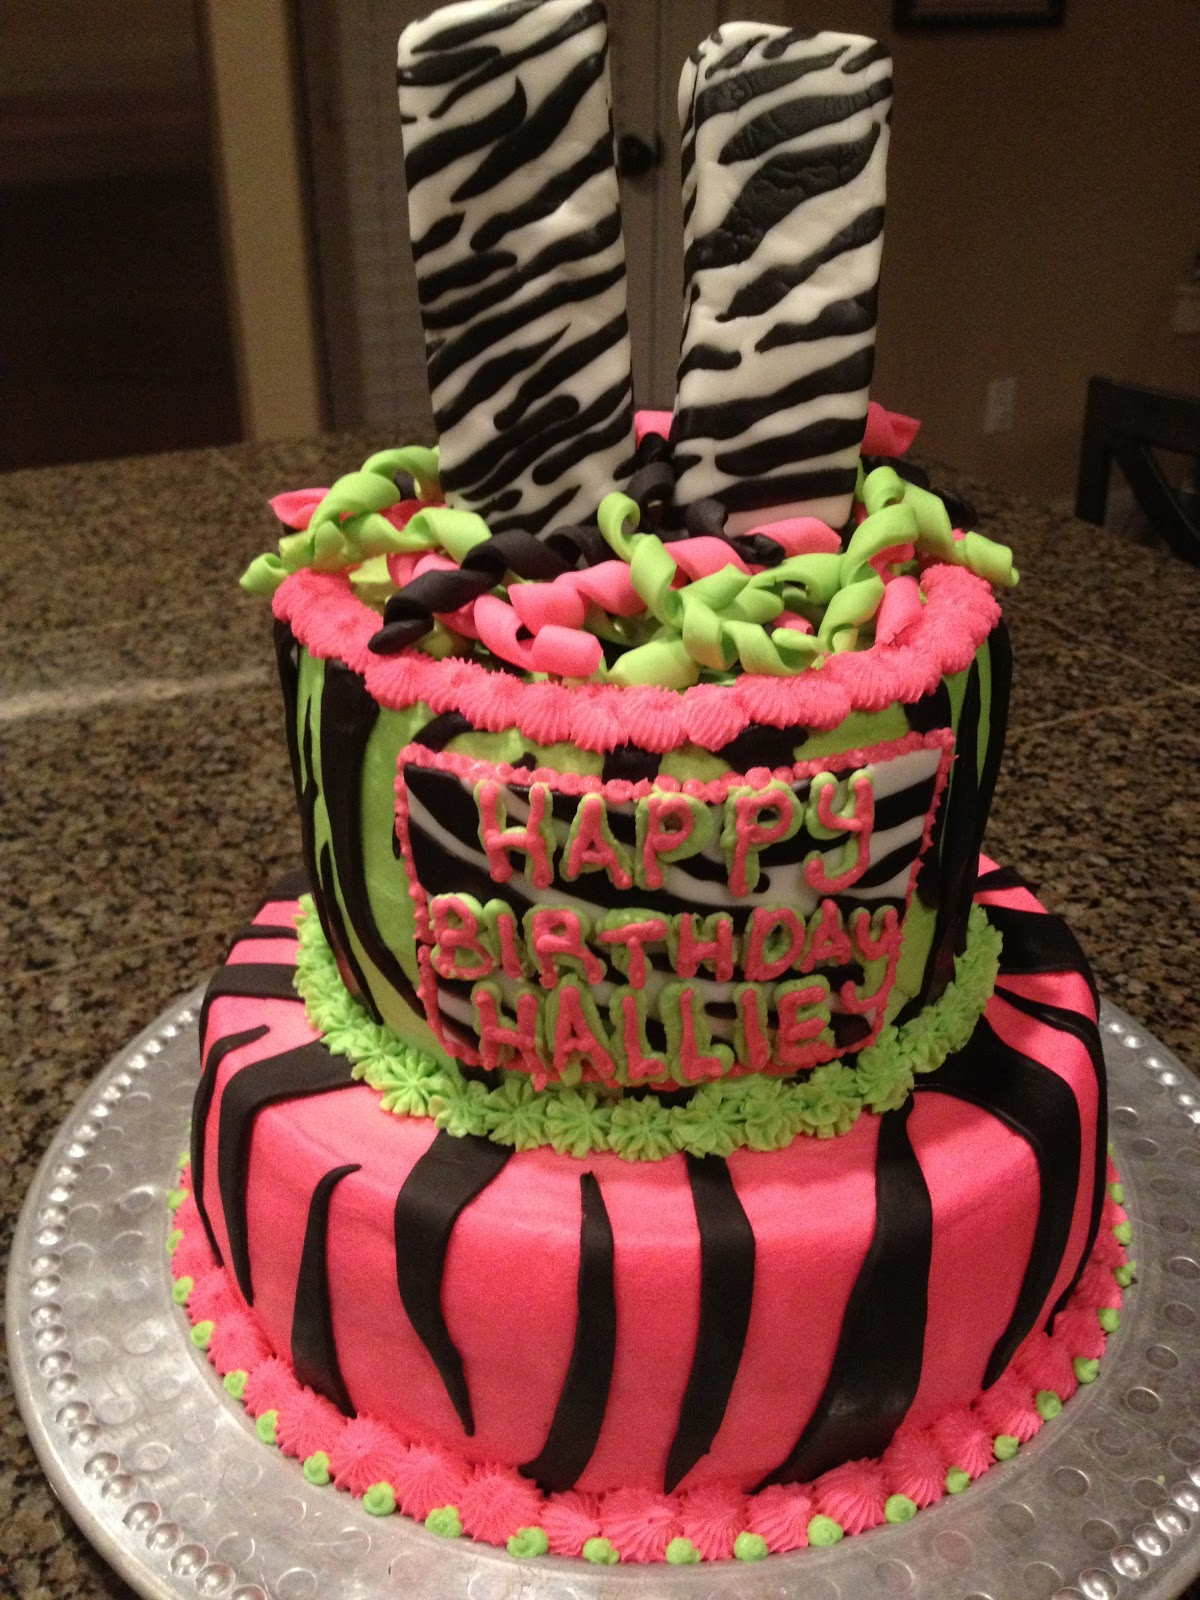 Cats Cake Creations: BRIGHT Pink and Green Zebra Birthday Cake